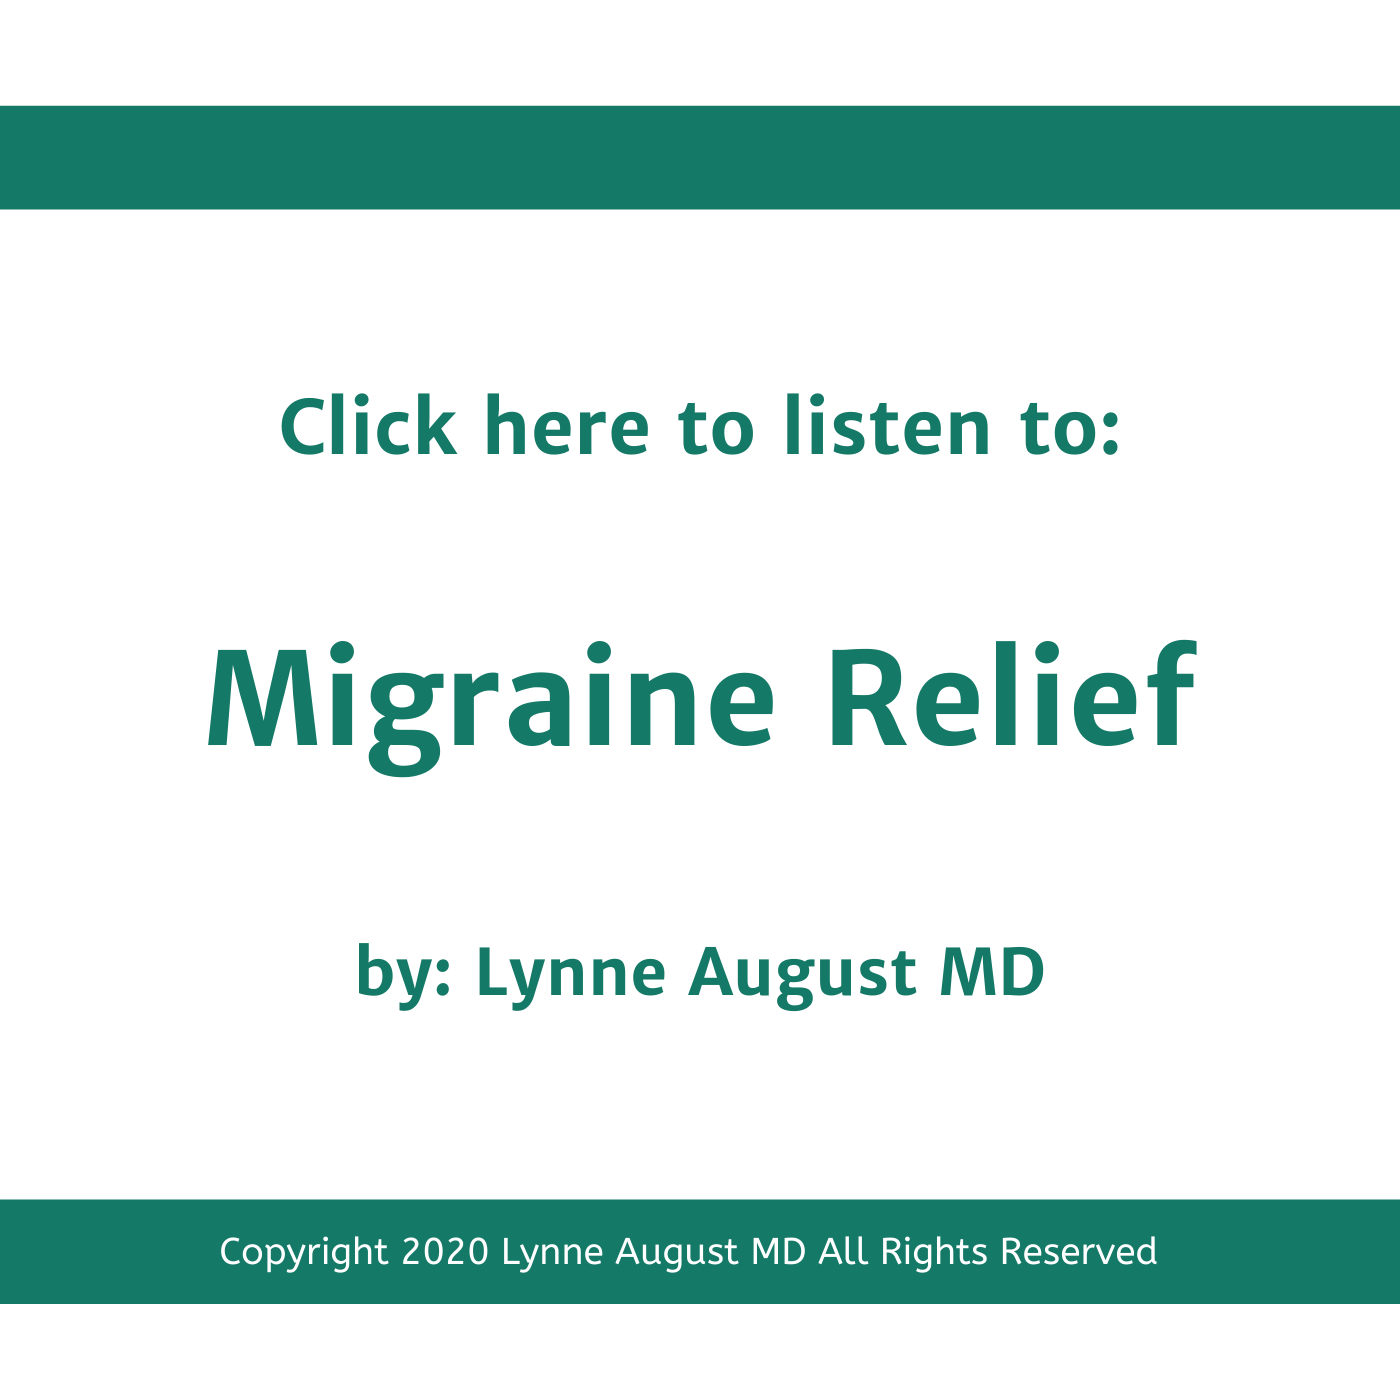 Podcast title image for Migraine Relief by Lynne August